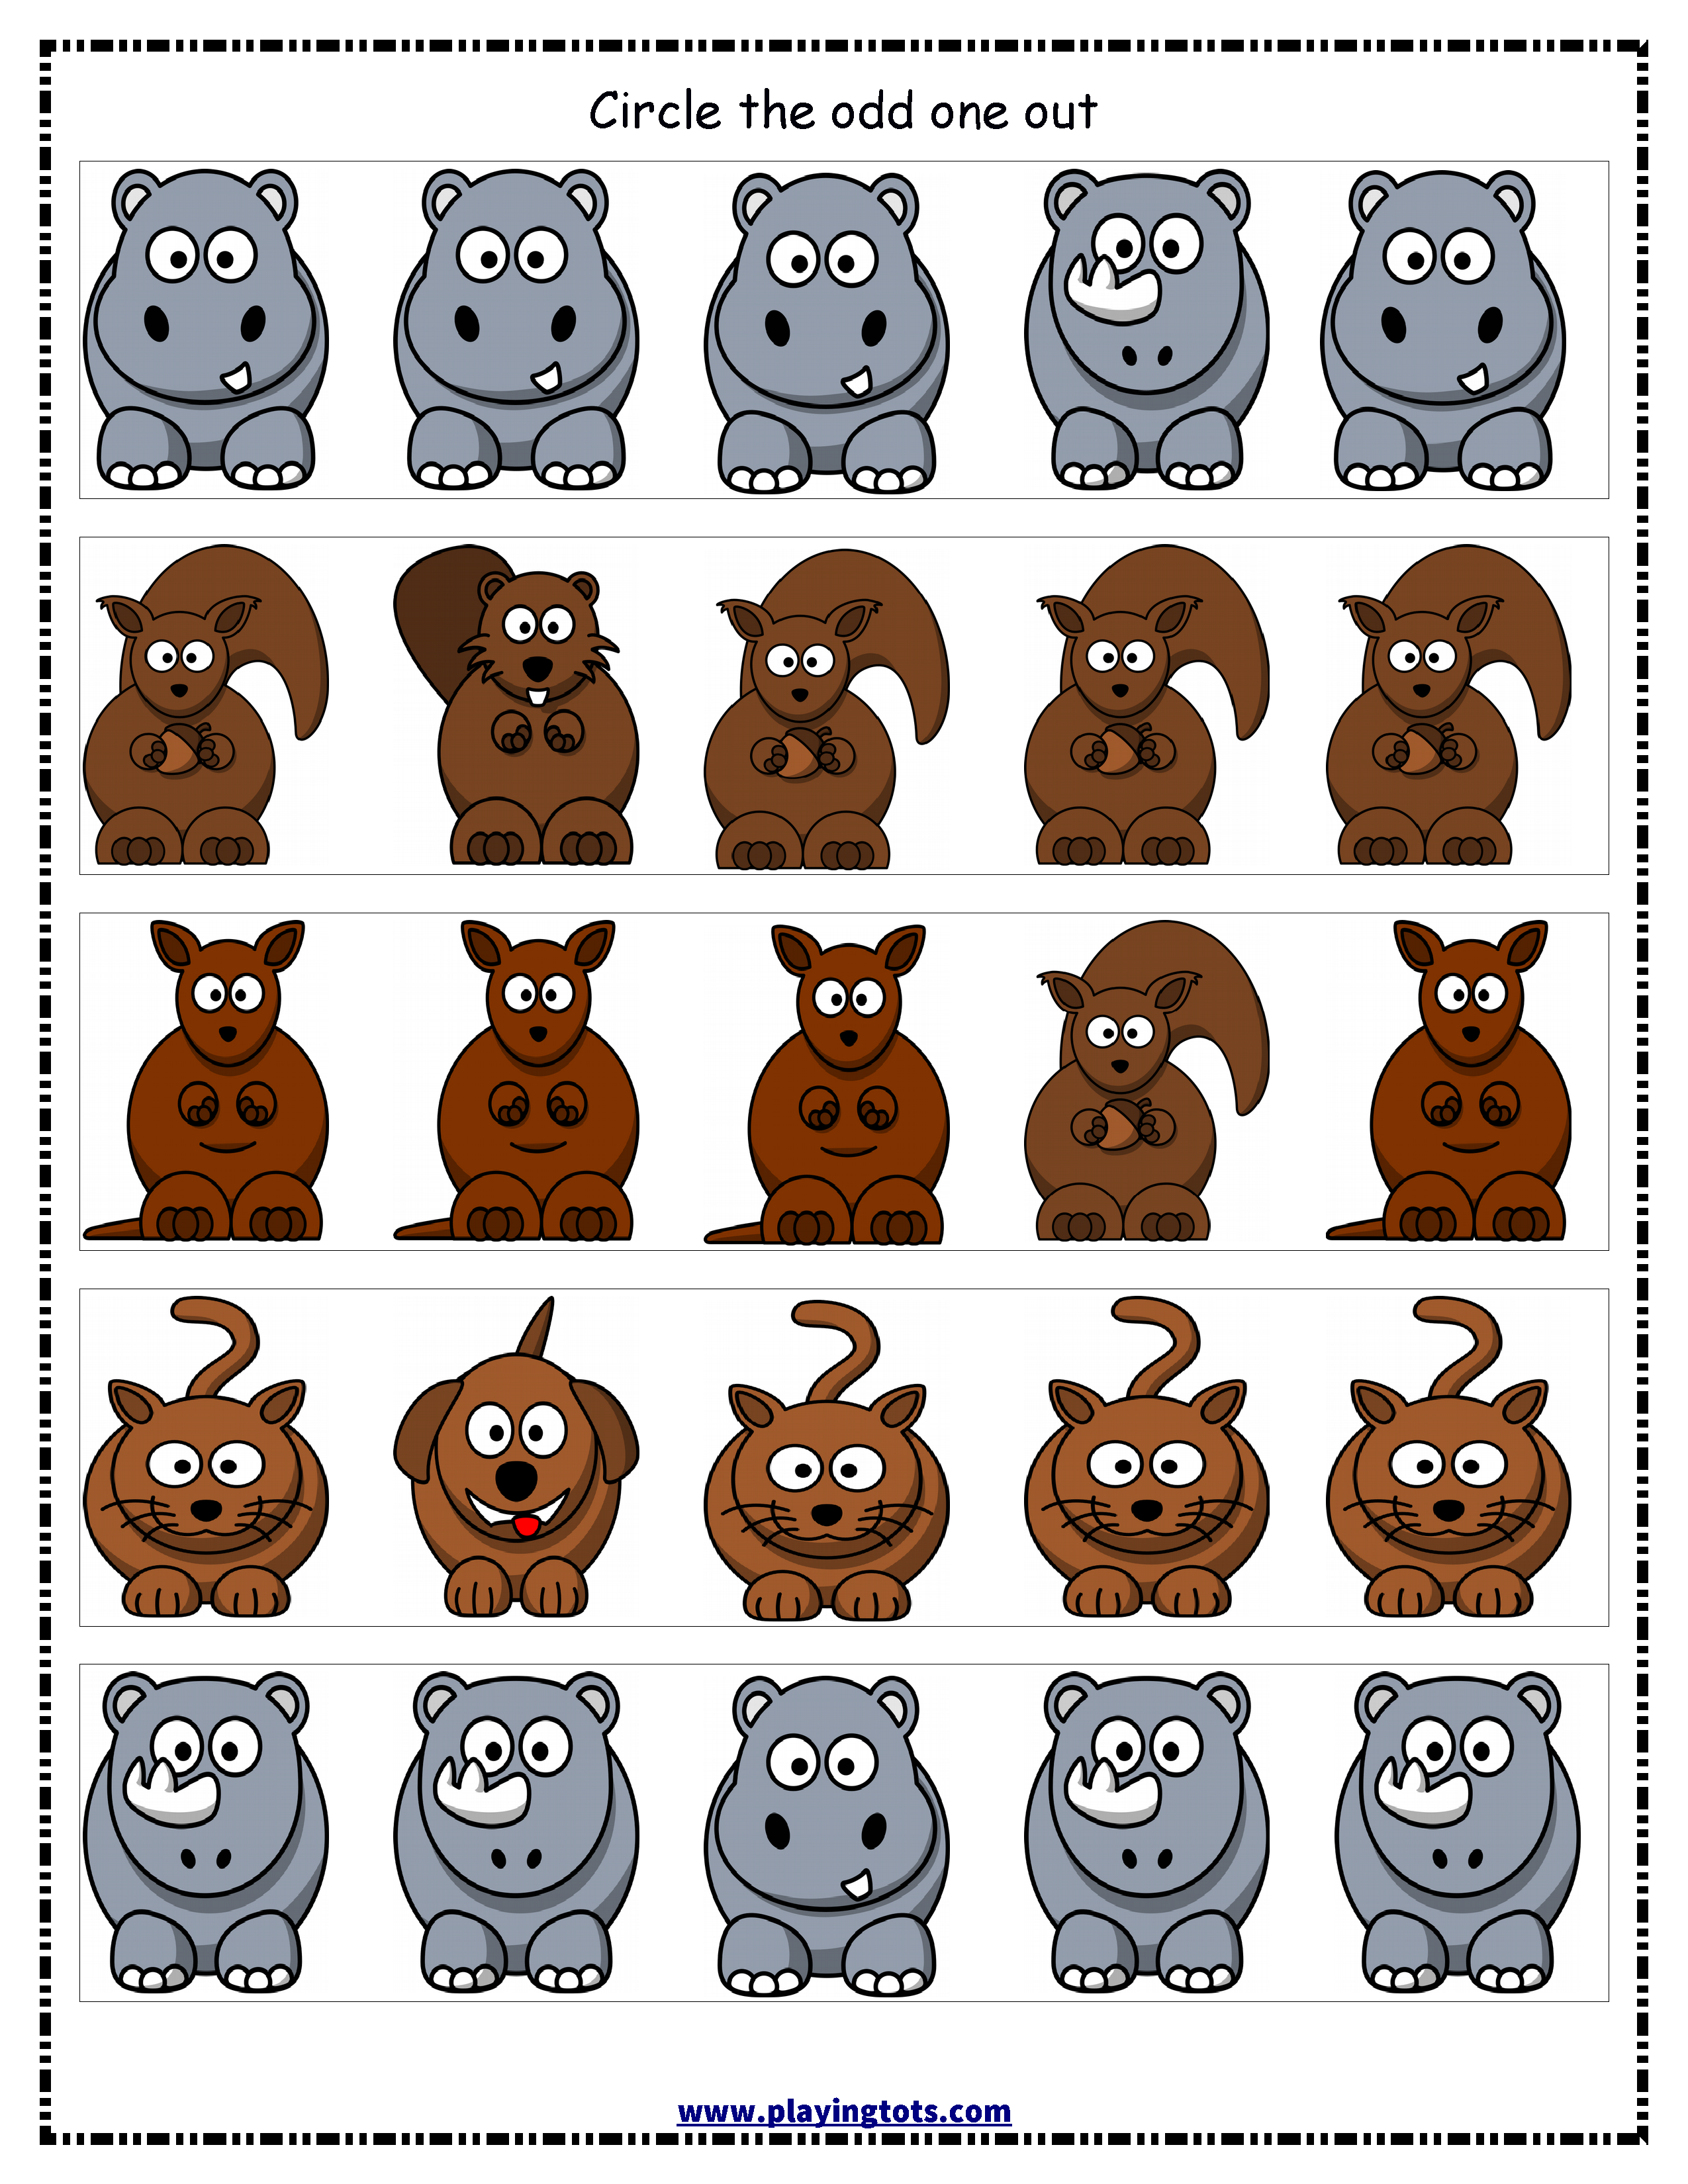 Worksheet Animals Odd One Out Free Printable Kids Toddler